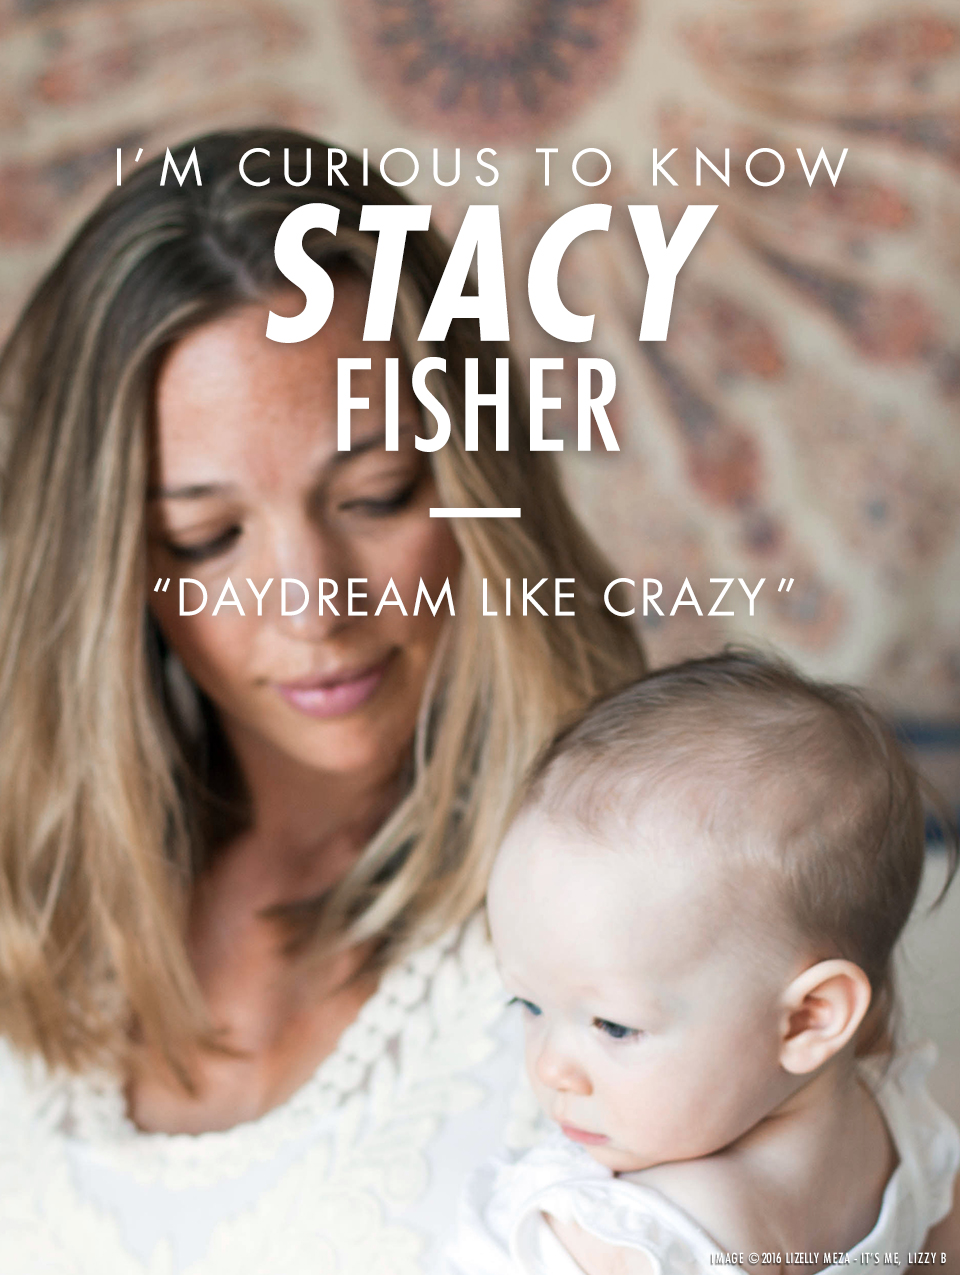 I'm Curious to Know—Stacy Fisher // It's Me, Lizzy B - Musings on Life, Business, & The Pursuit of Curiosity // Personal blog of Lizelly Meza